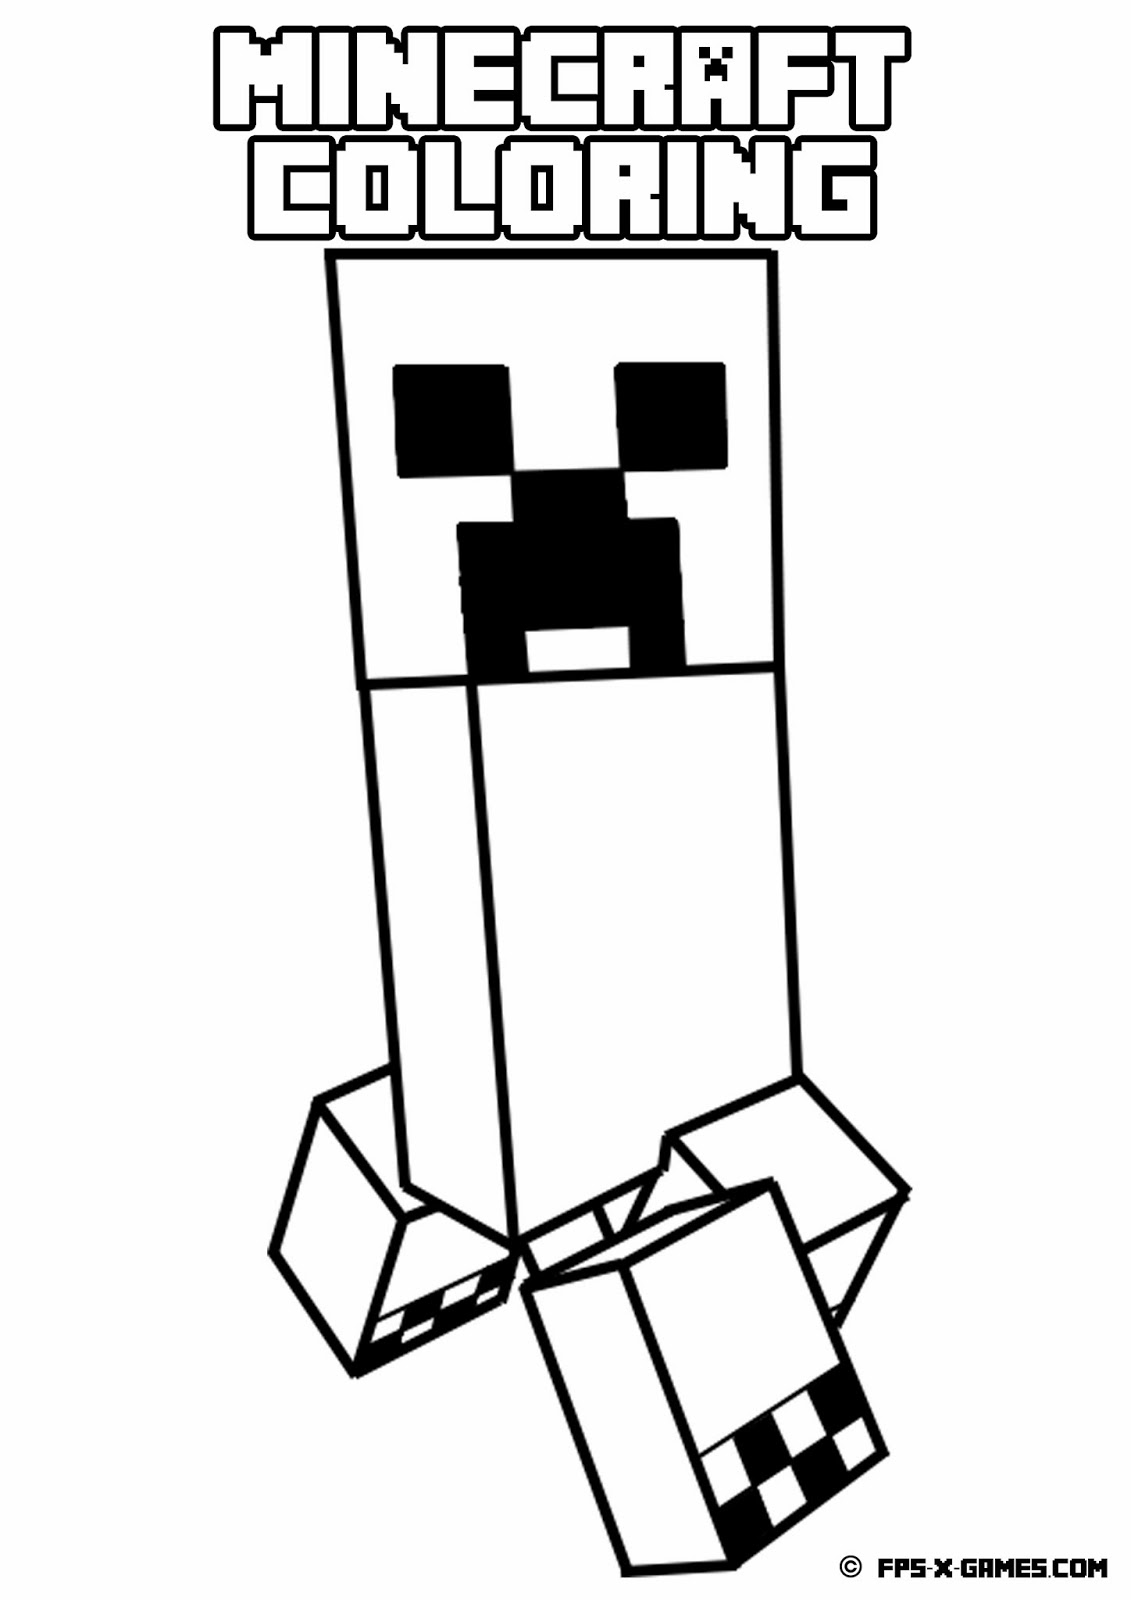 creeper coloring pages 29 minecraft creeper coloring page pictures creeper pages coloring